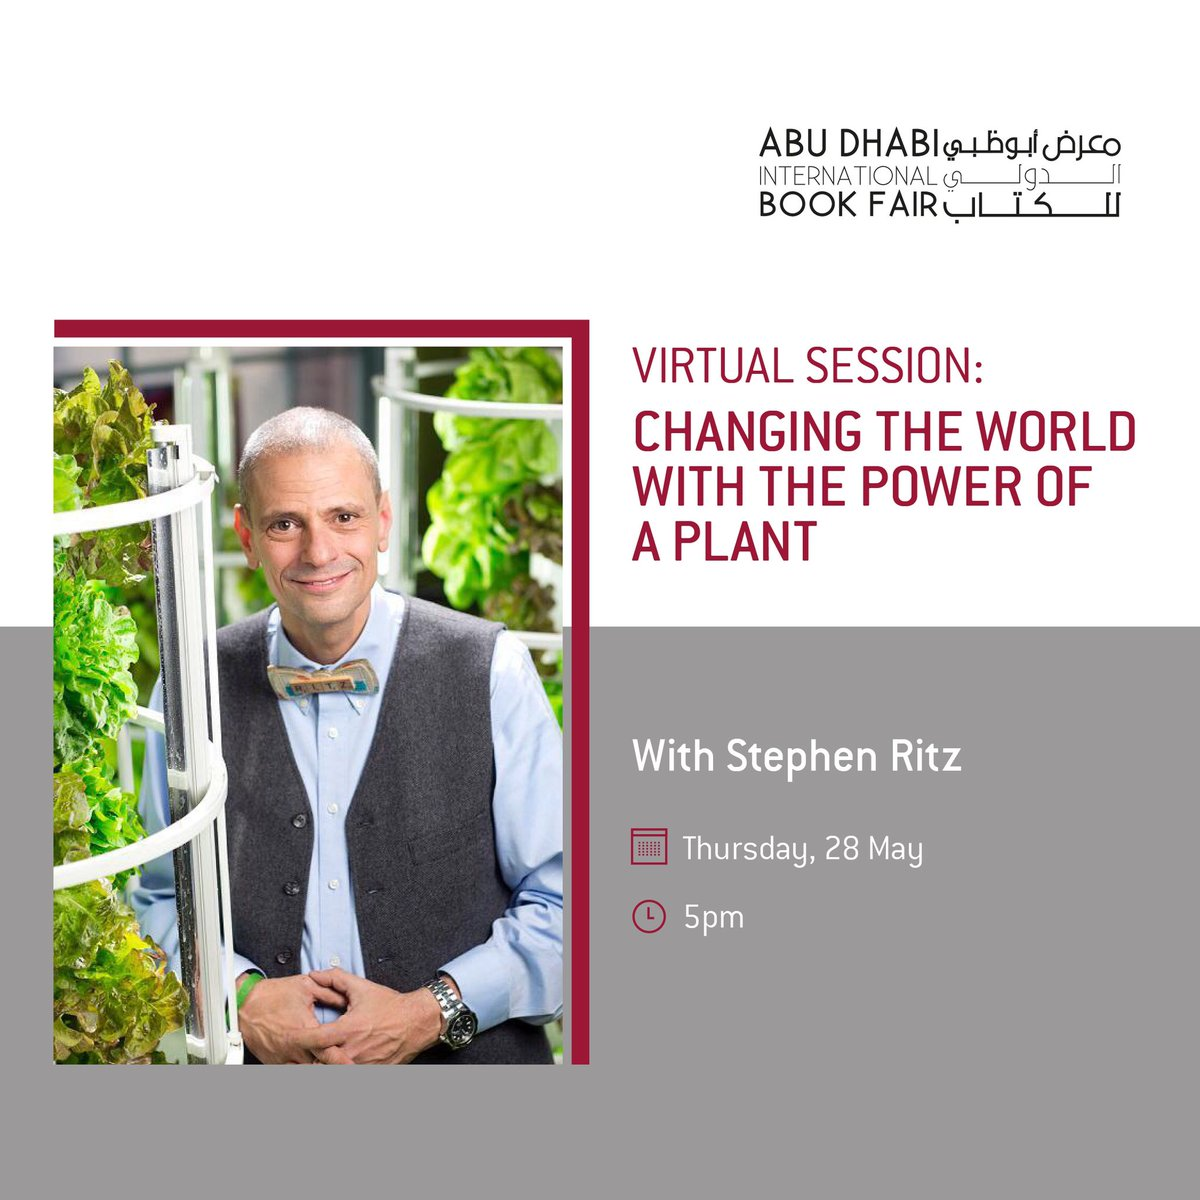 Can't wait for my @greenBXmachine @TeacherPrize @EsolEducation1 @DunecrestDubai @FairgreenDubai @greensheikh @MousaSally @expo2020dubai  @KNargish @ArabBabaThatsMe @KHDA @TeachersOfDubai @TowerGarden @CSD9Bronx @teachmiddleeast amigos to see it! Was proud to feature all of you!